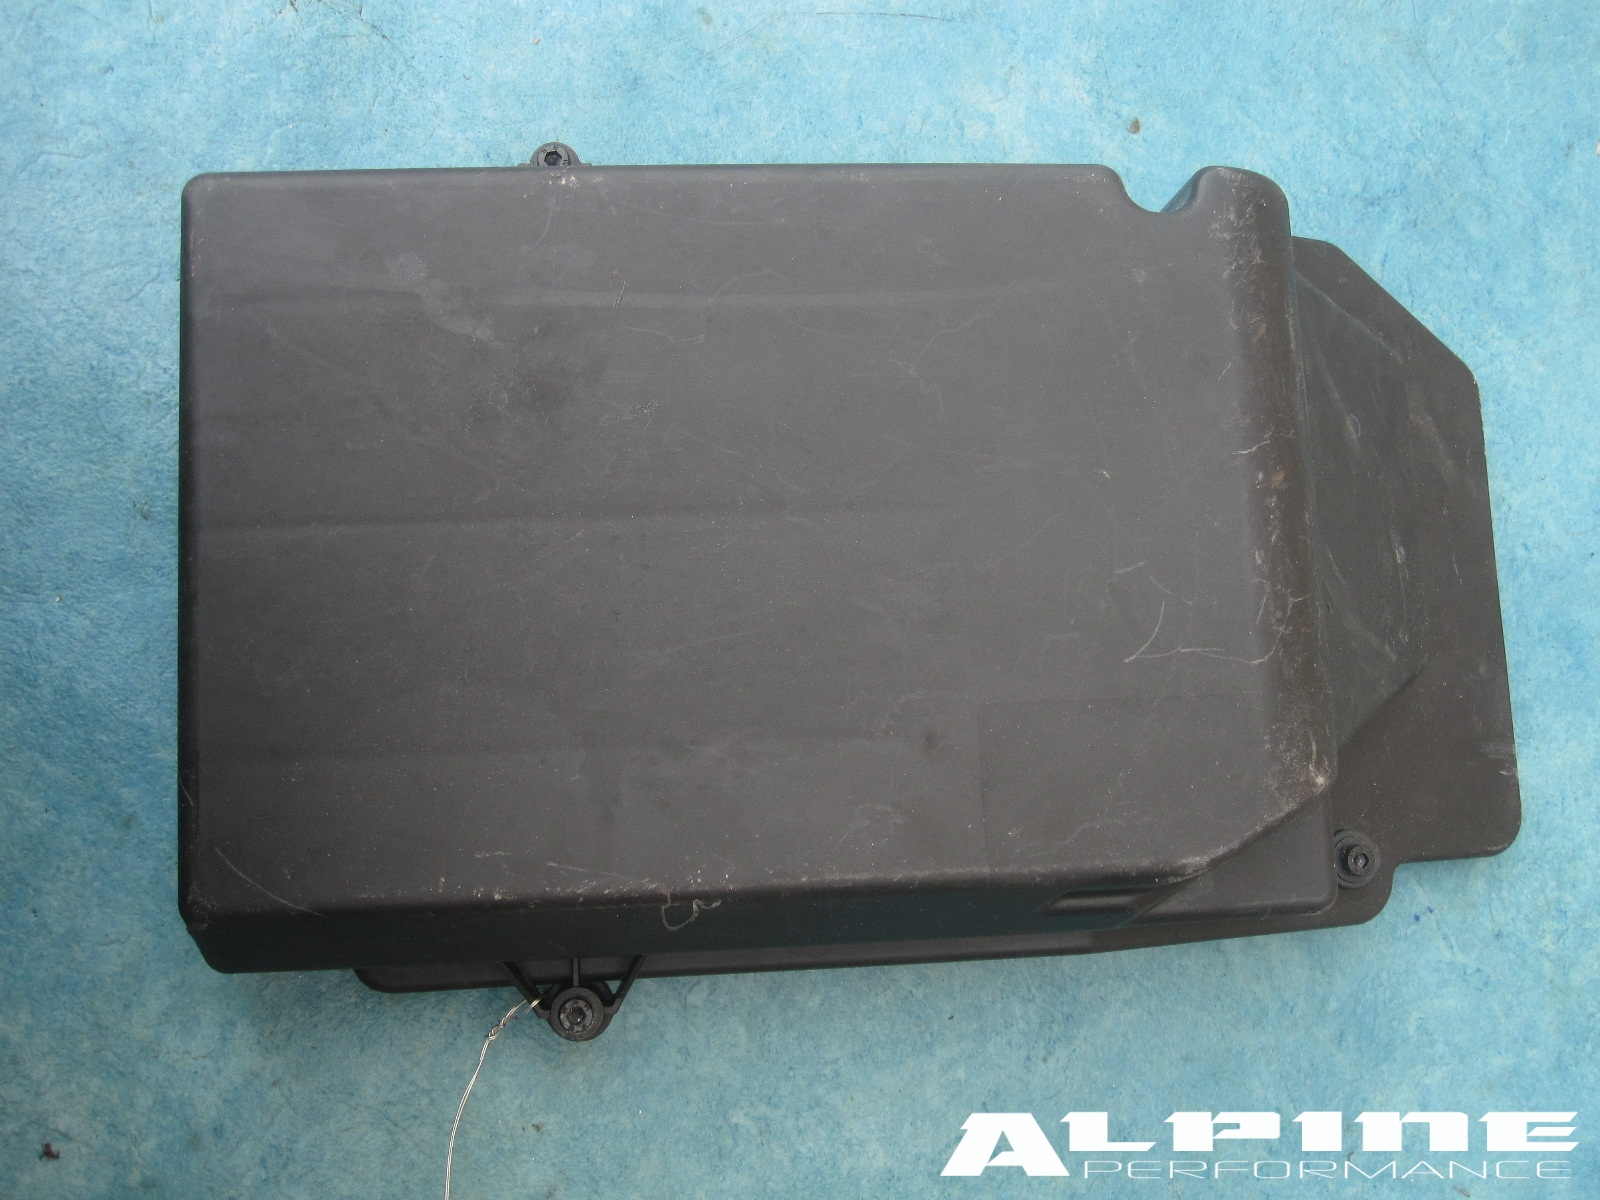 MERCEDES BENZ S550 CL550 LEFT CASE HOUSING FUSE BOX COVER W221 W216.  $40.00. 1 in stock